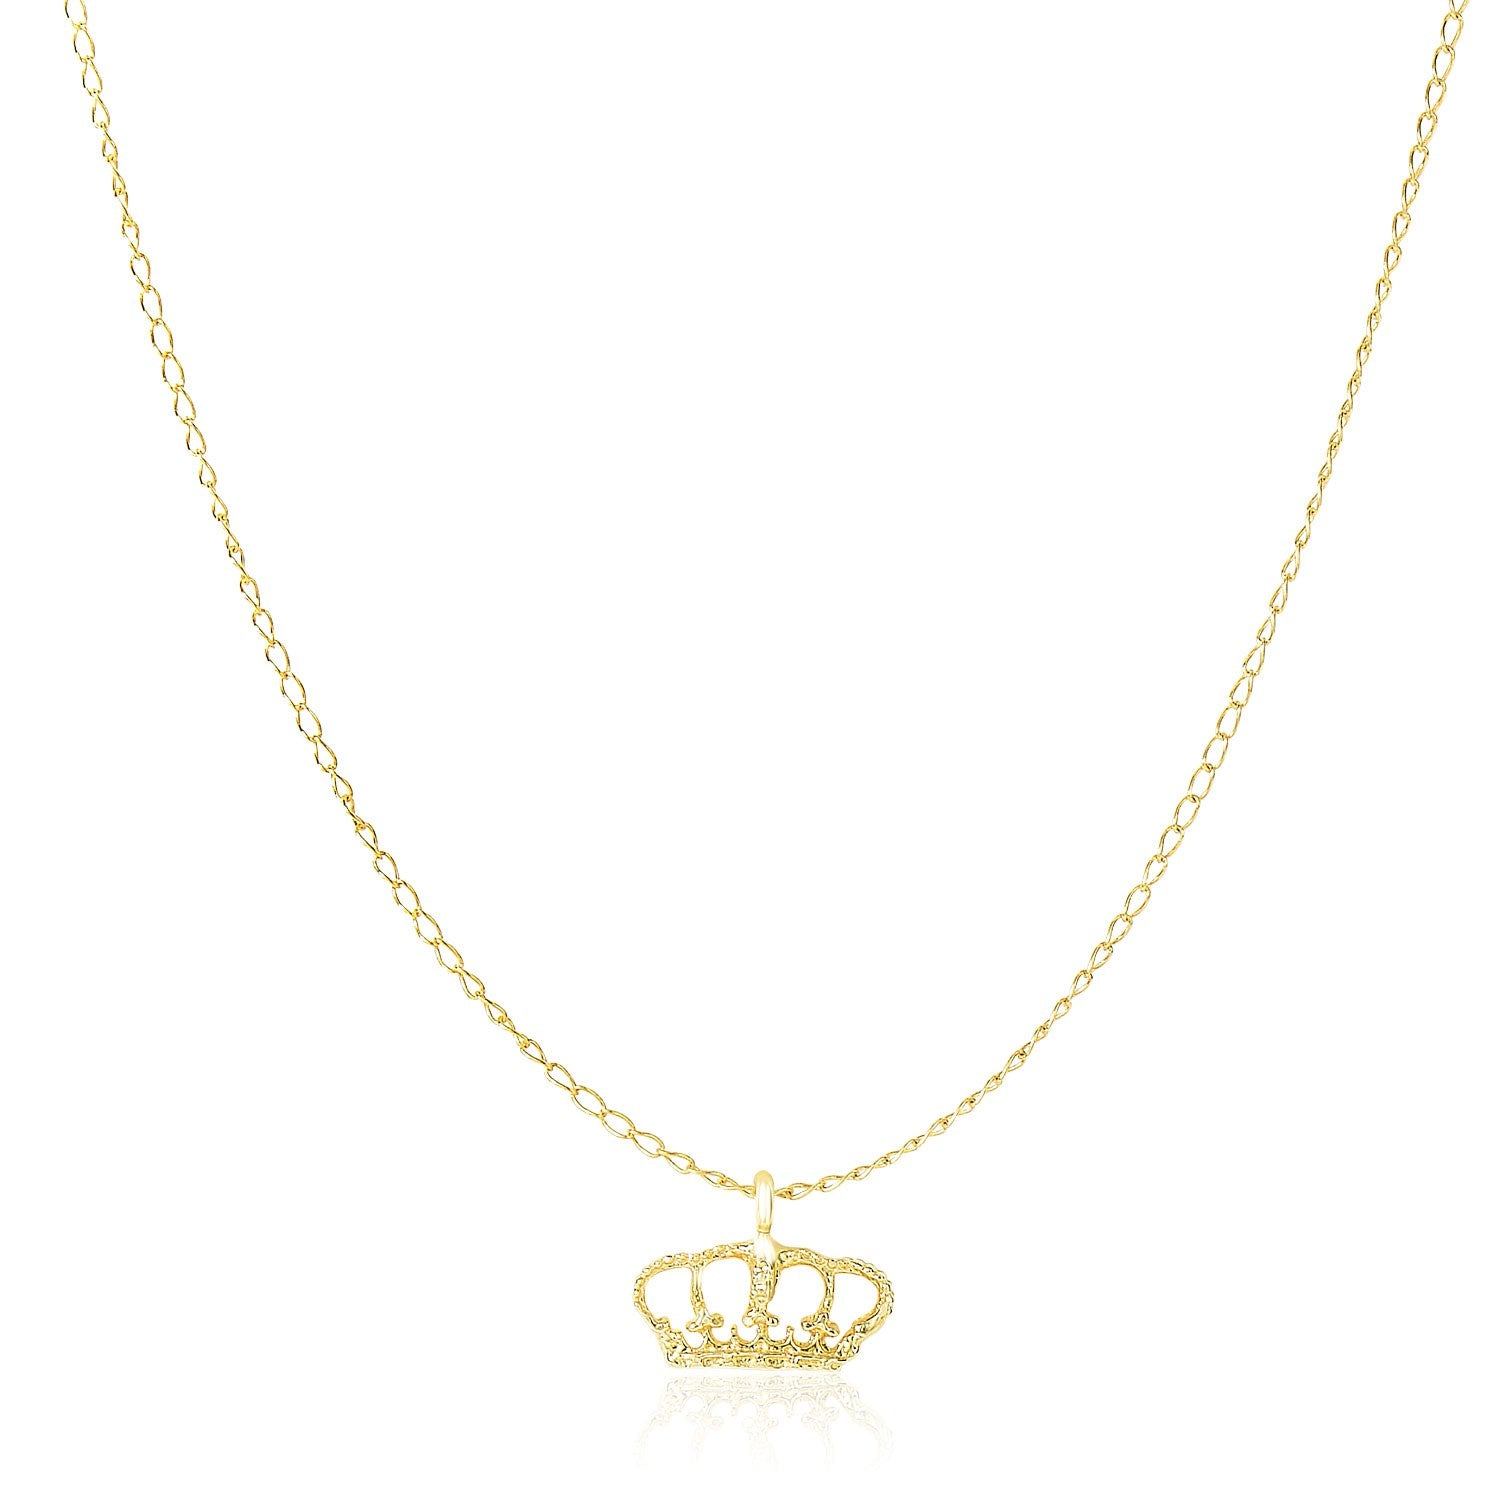 14K Yellow Gold Textured Crown Design Pendant